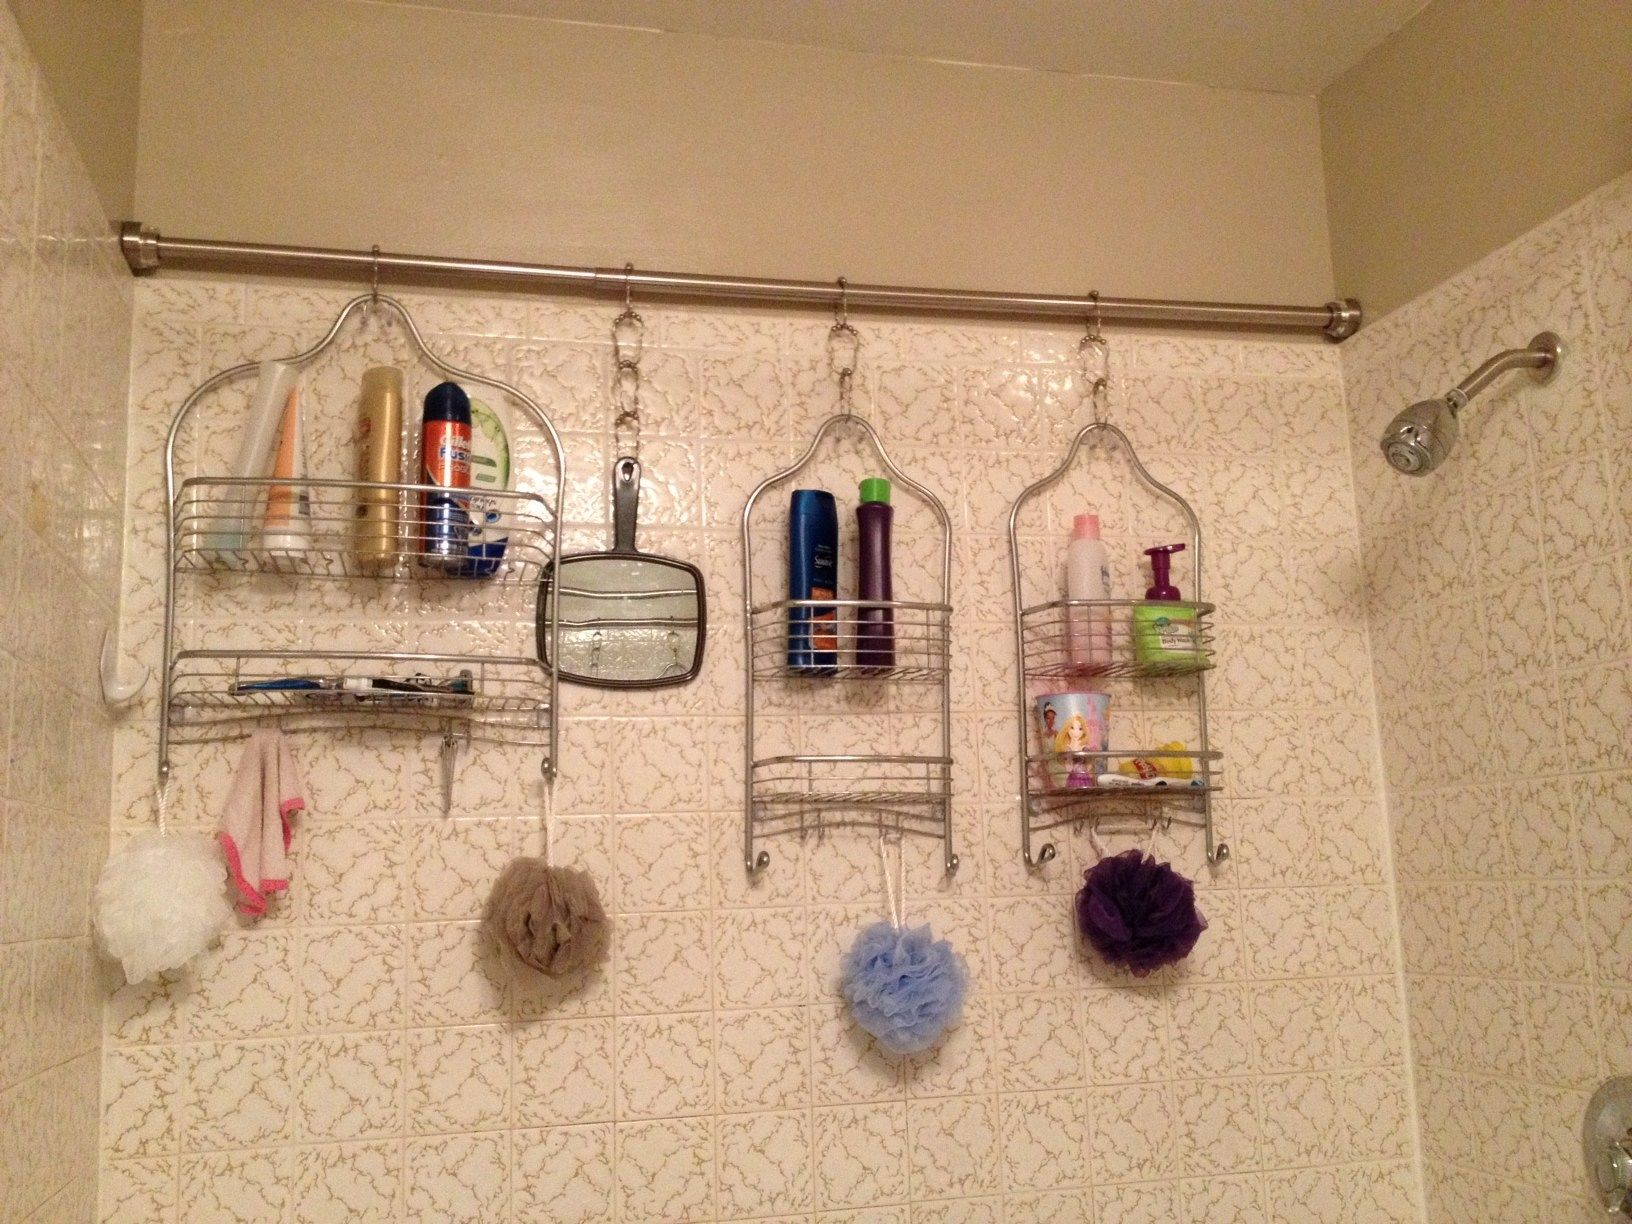 Install A Tension Rod In Your Shower And Hang Multiple